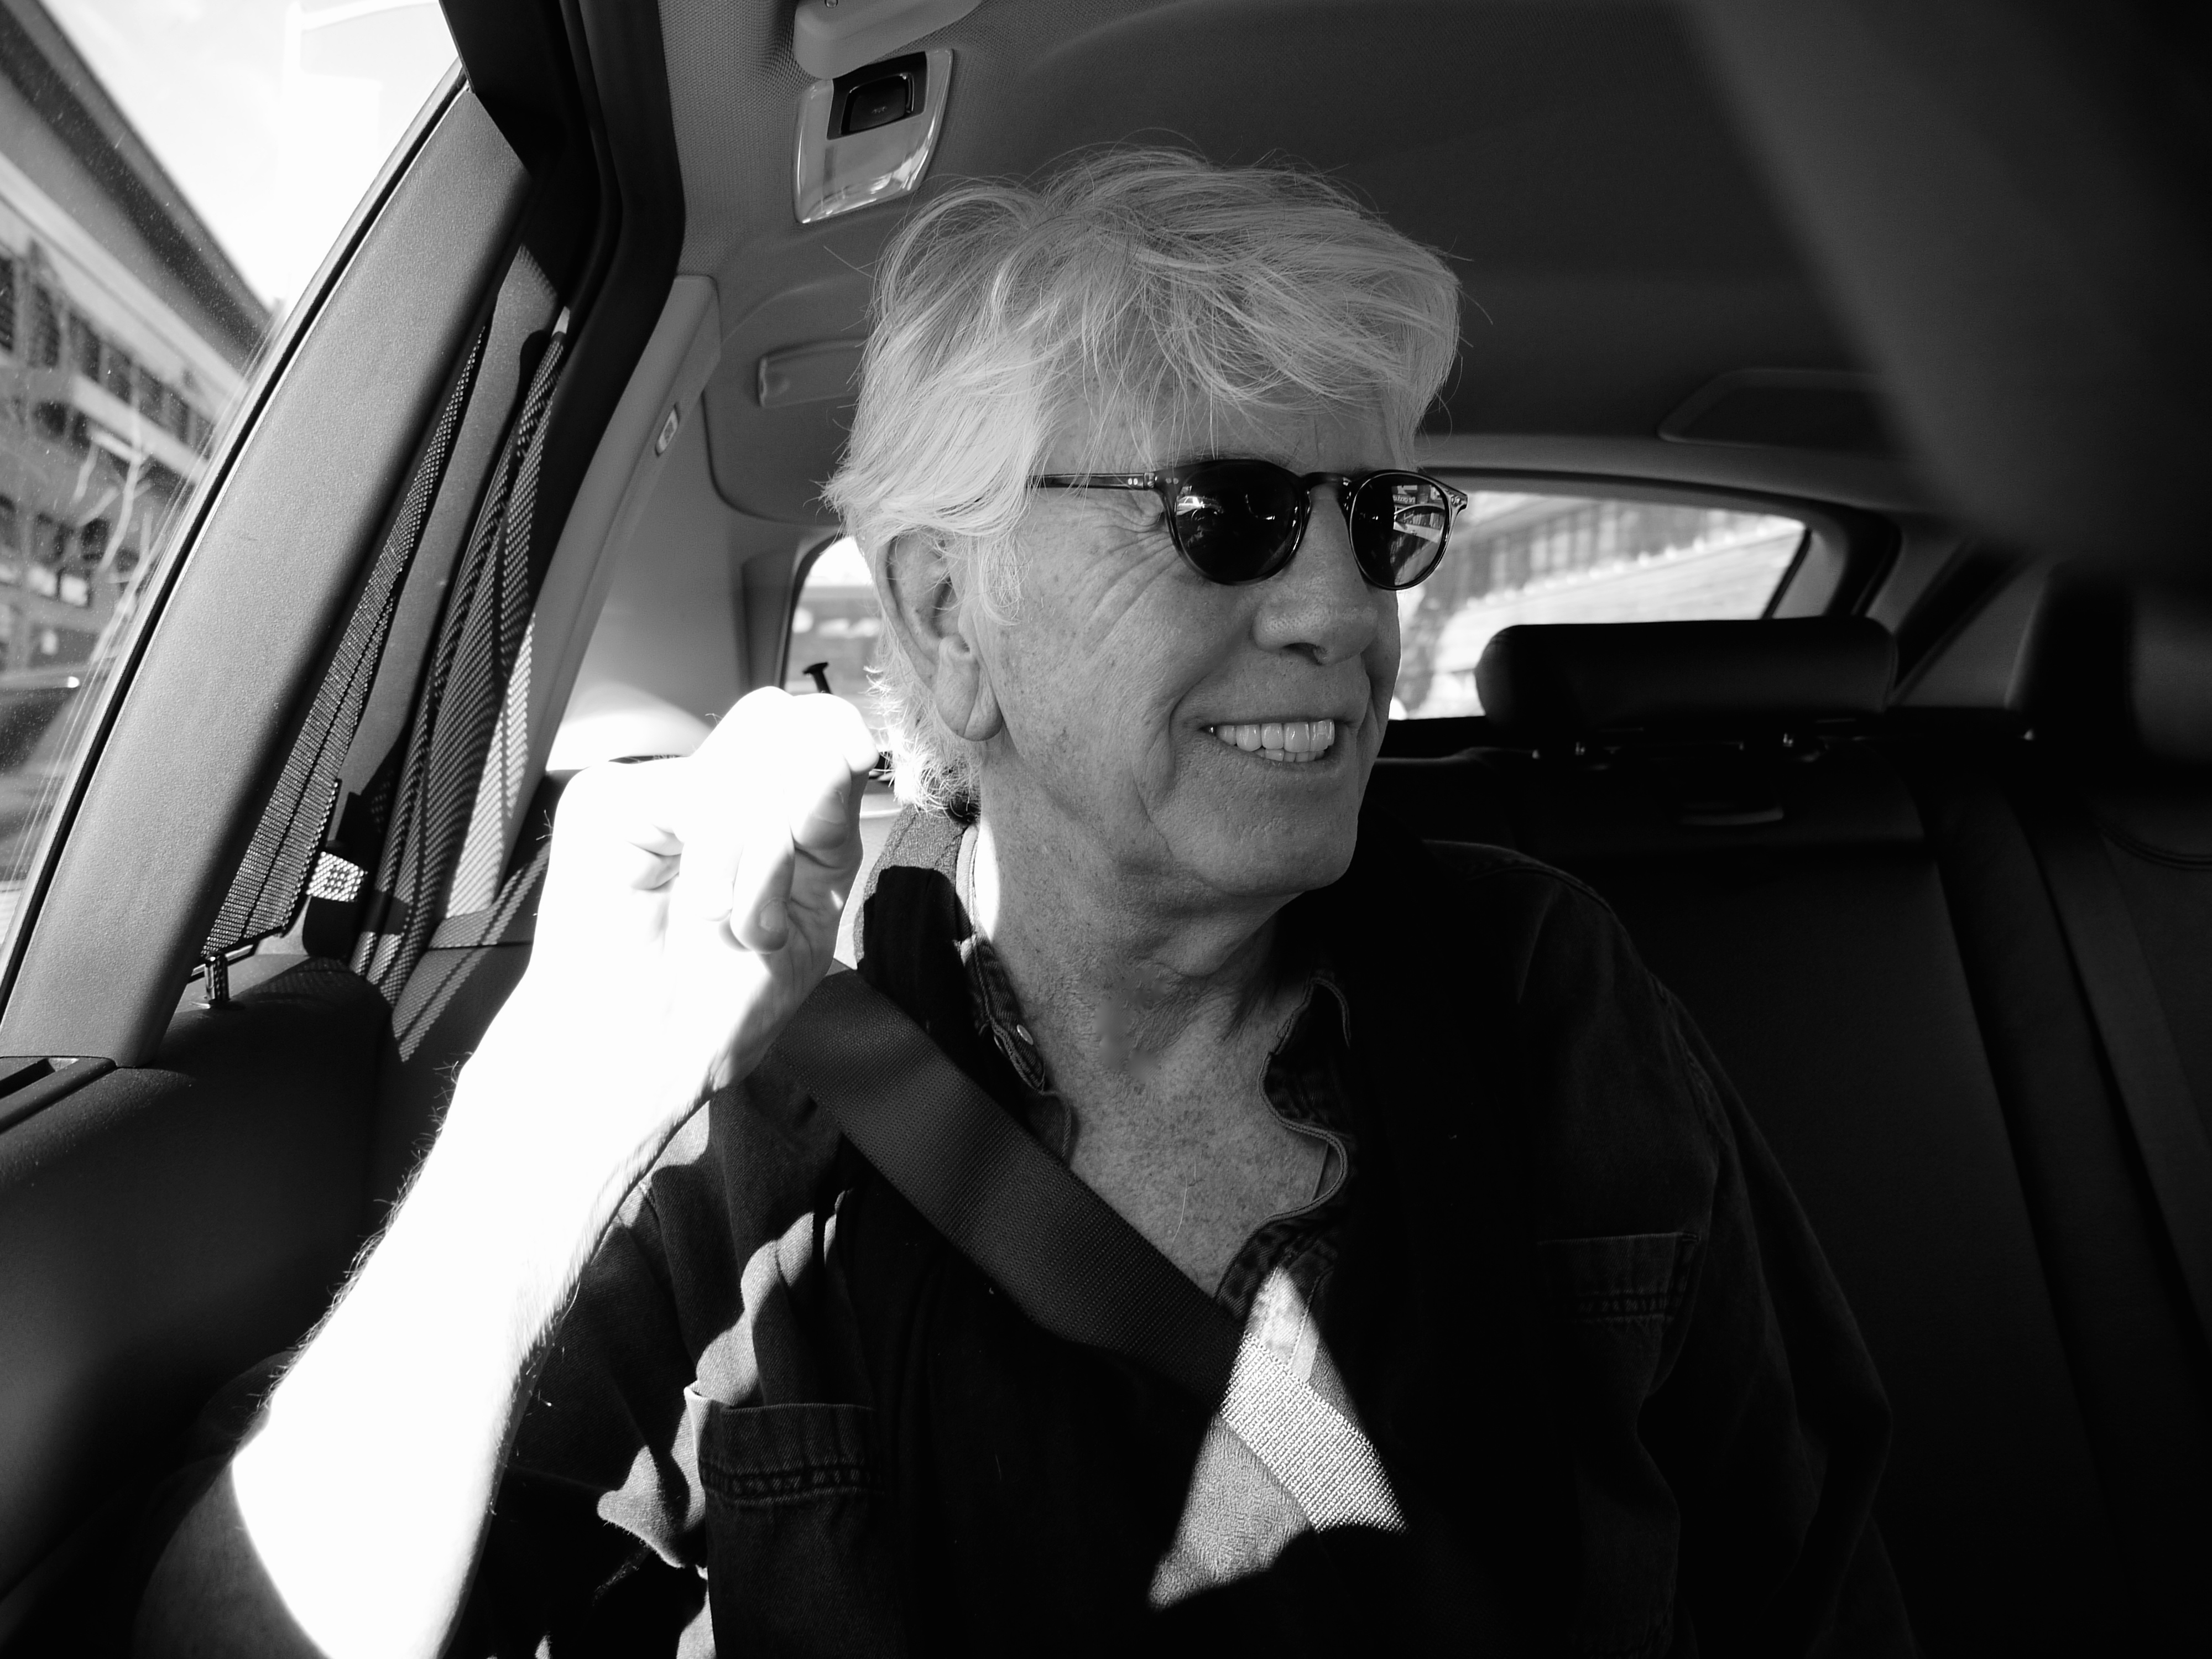 GIVEAWAY - Win tickets to Graham Nash at the Theatre at the Ace Hotel (LA) 10/11